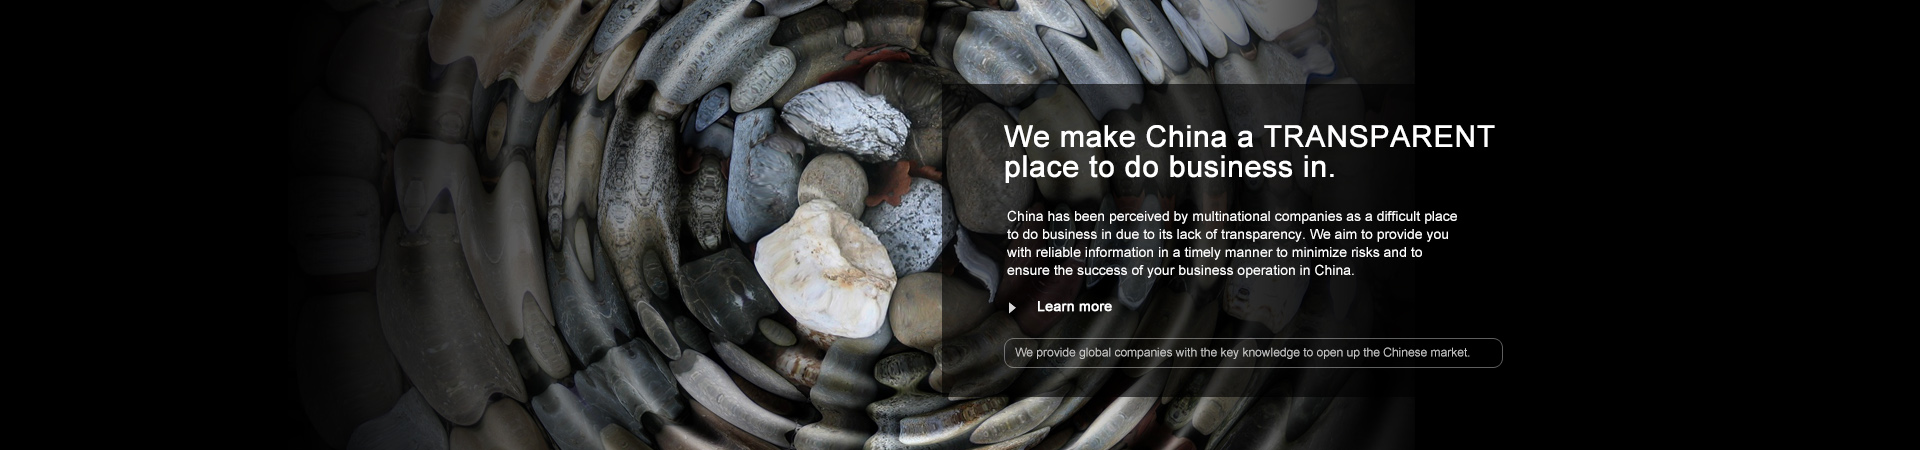 We make China a TRANSPARENT place to do business in.